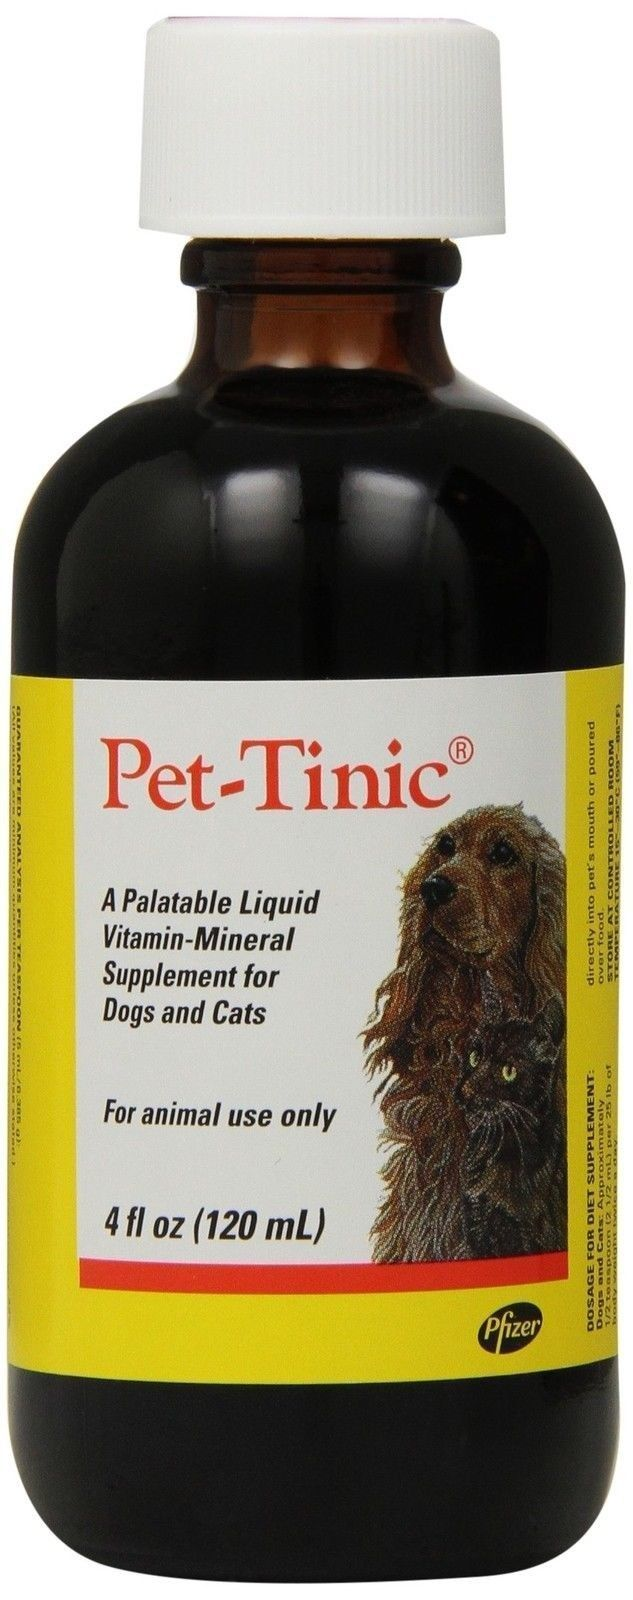 Pet Tinic Vitamin Mineral Supplement for Dogs and Cats 4